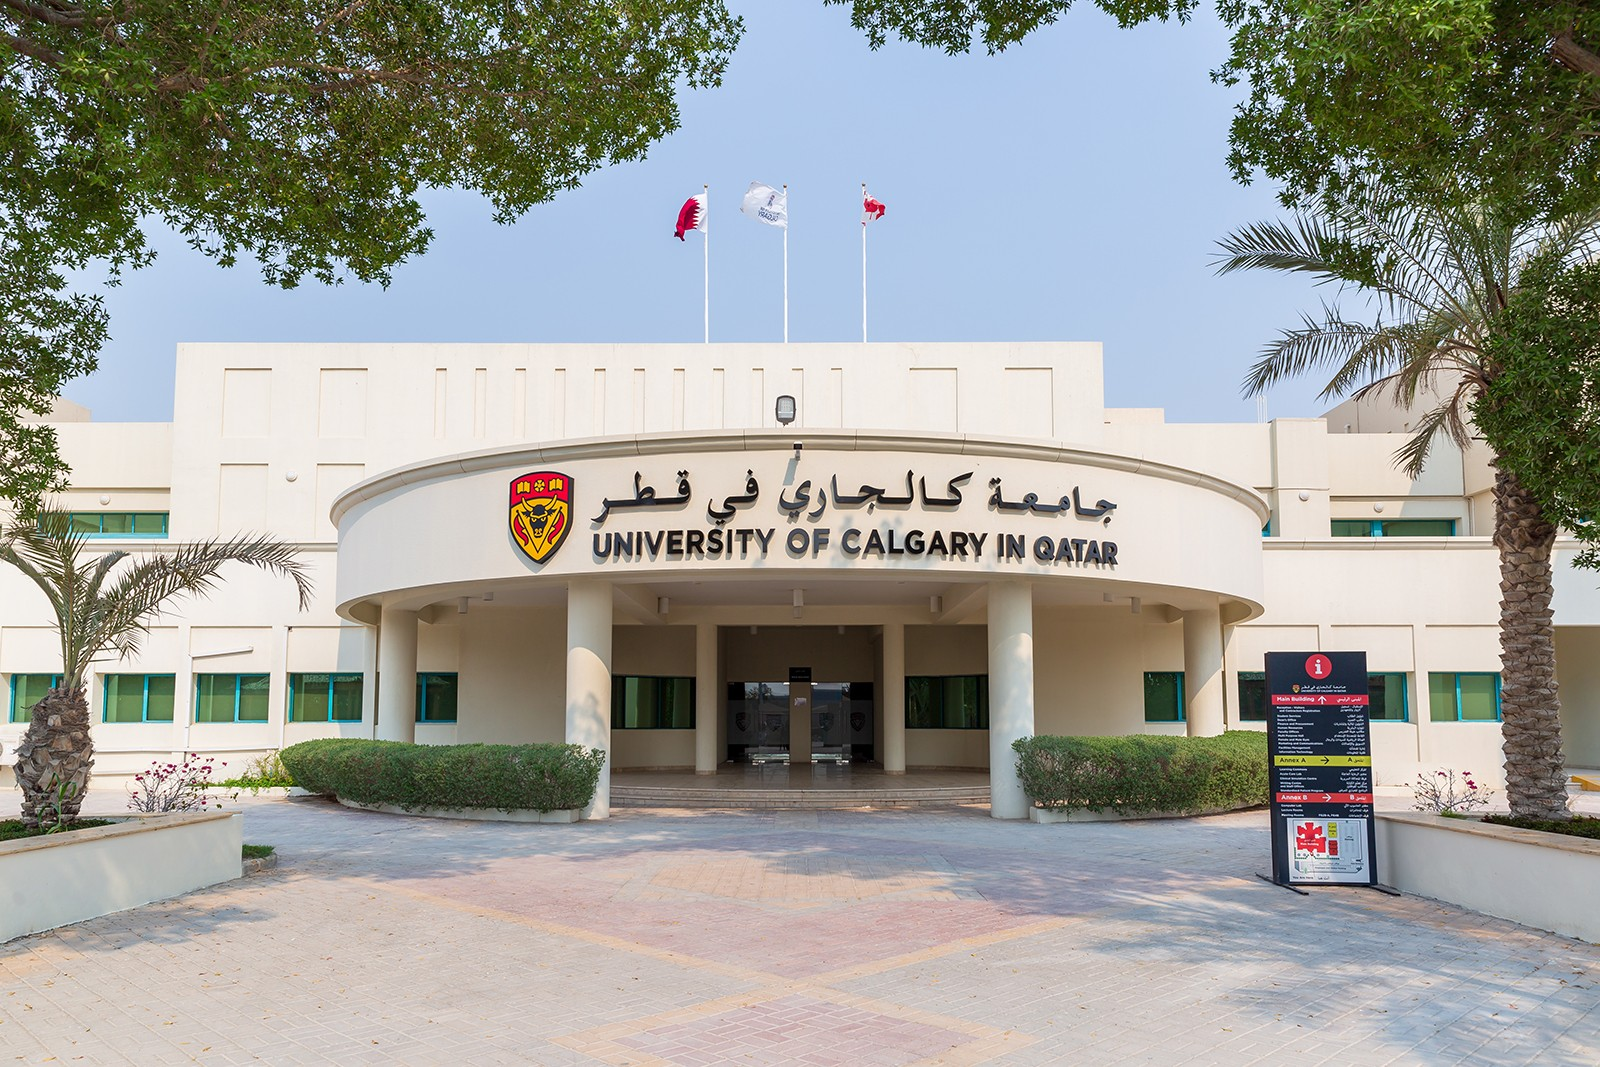 University of Calgary in Qatar | LinkedIn